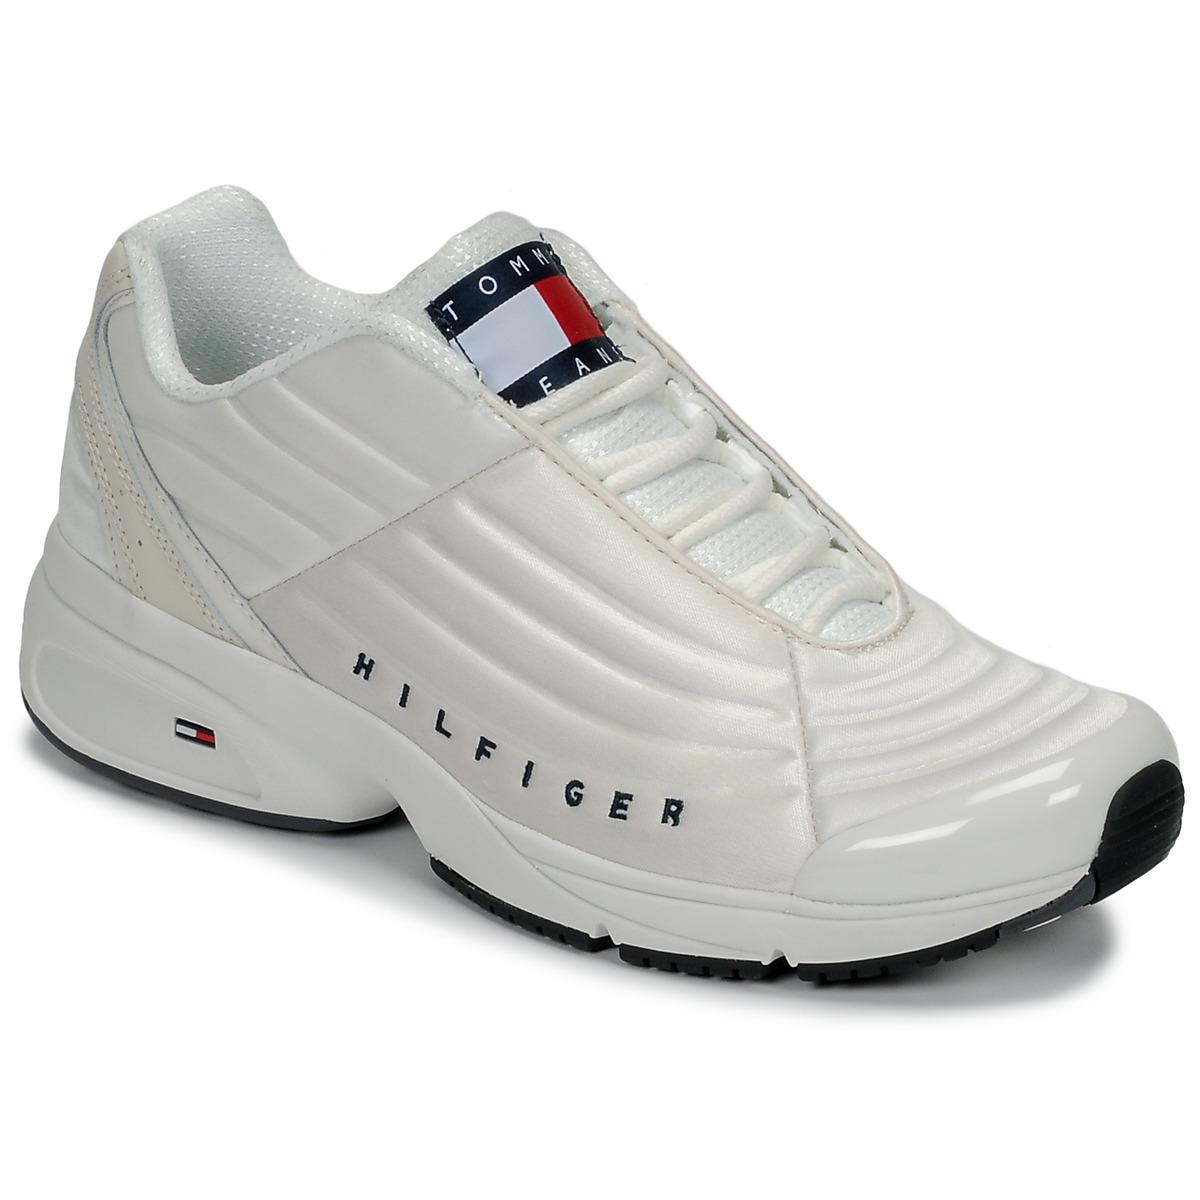 b1d70cce9 Tommy Hilfiger Phil 2c3 Men s Shoes (trainers) In White in White for ...